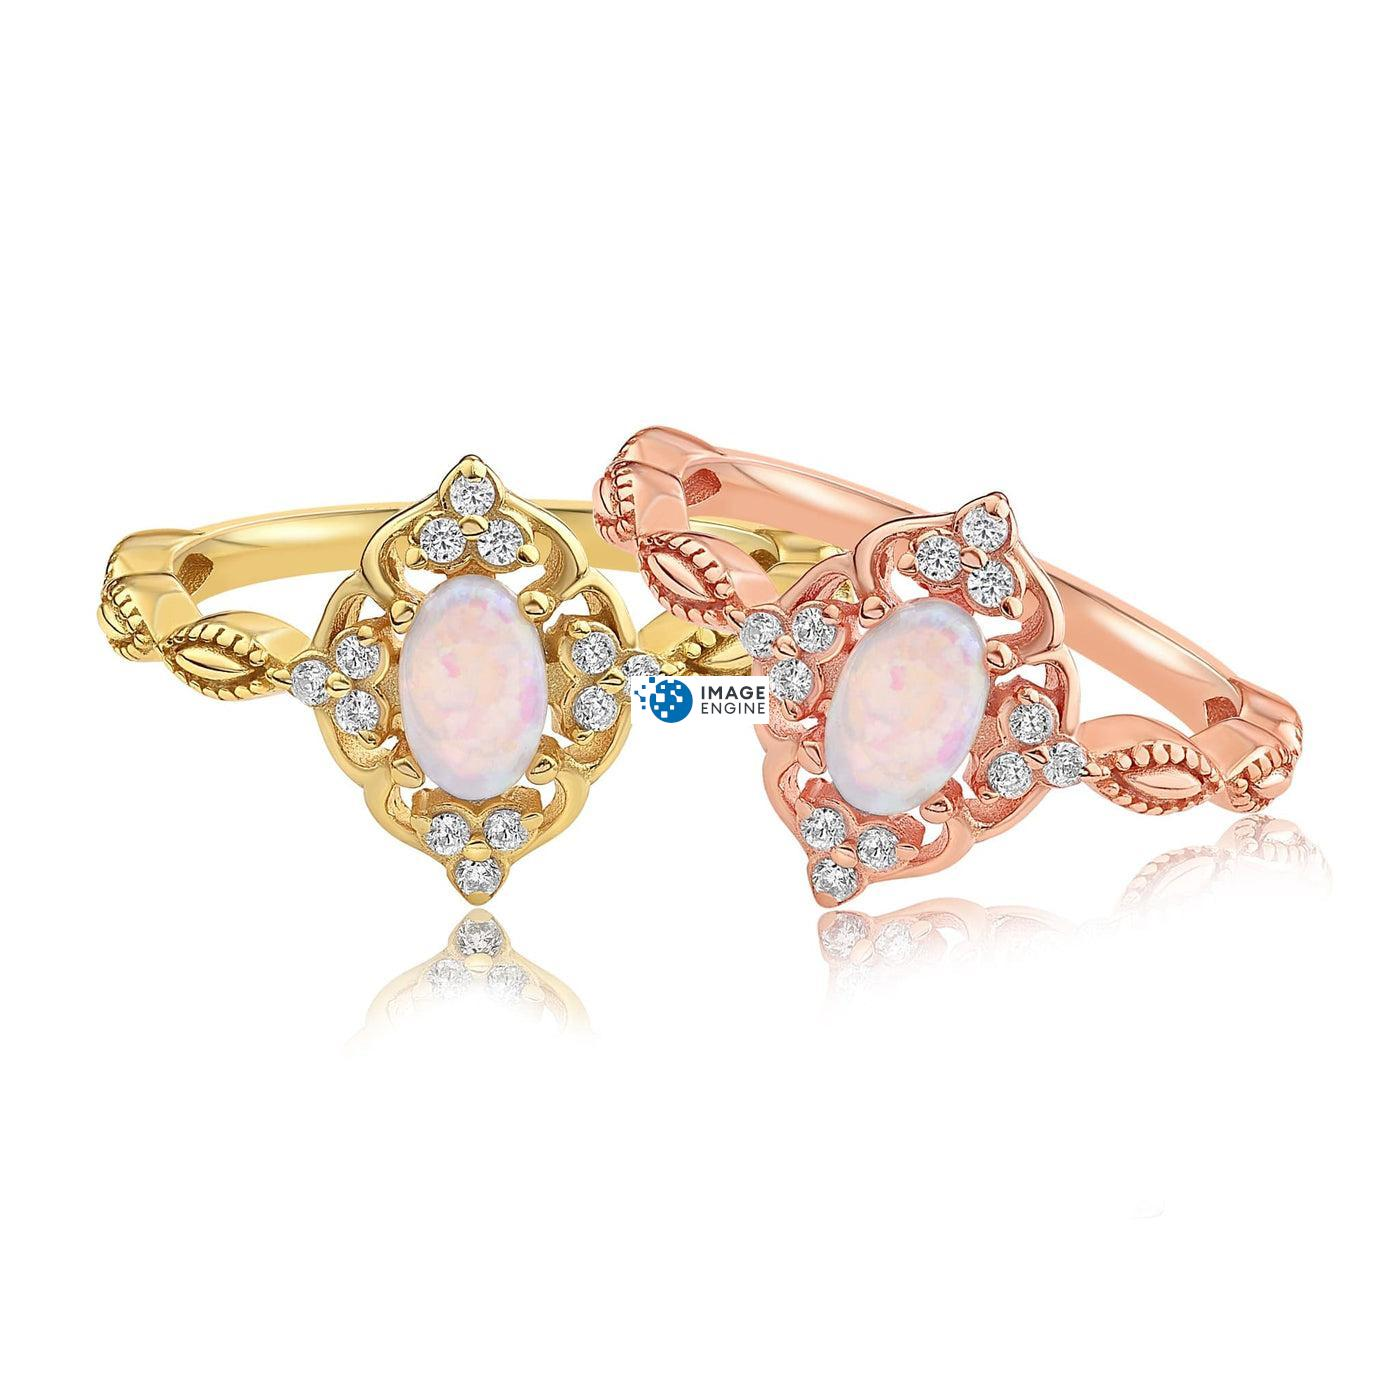 Blue Opal Carved Ring - Front View Side by Side - 18K Rose Gold Vermeil and 18K Yellow Gold Vermeil